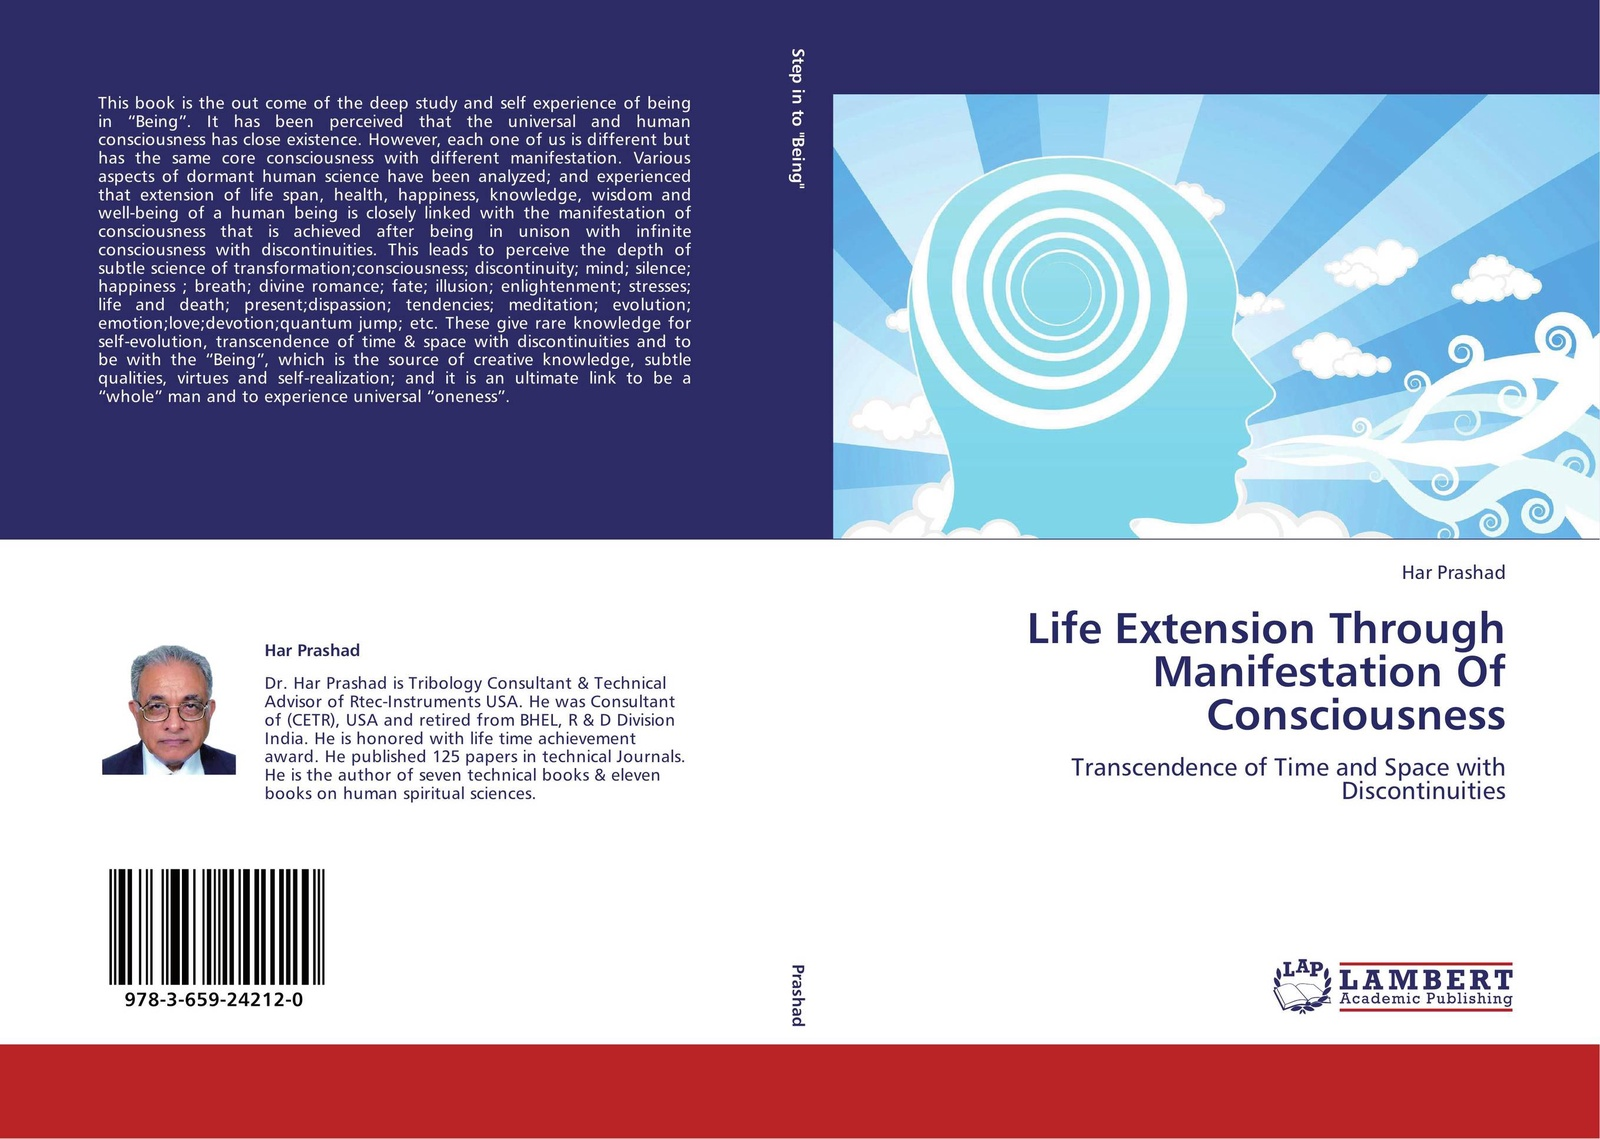 HAR PRASHAD Life Extension Through Manifestation Of Consciousness цена